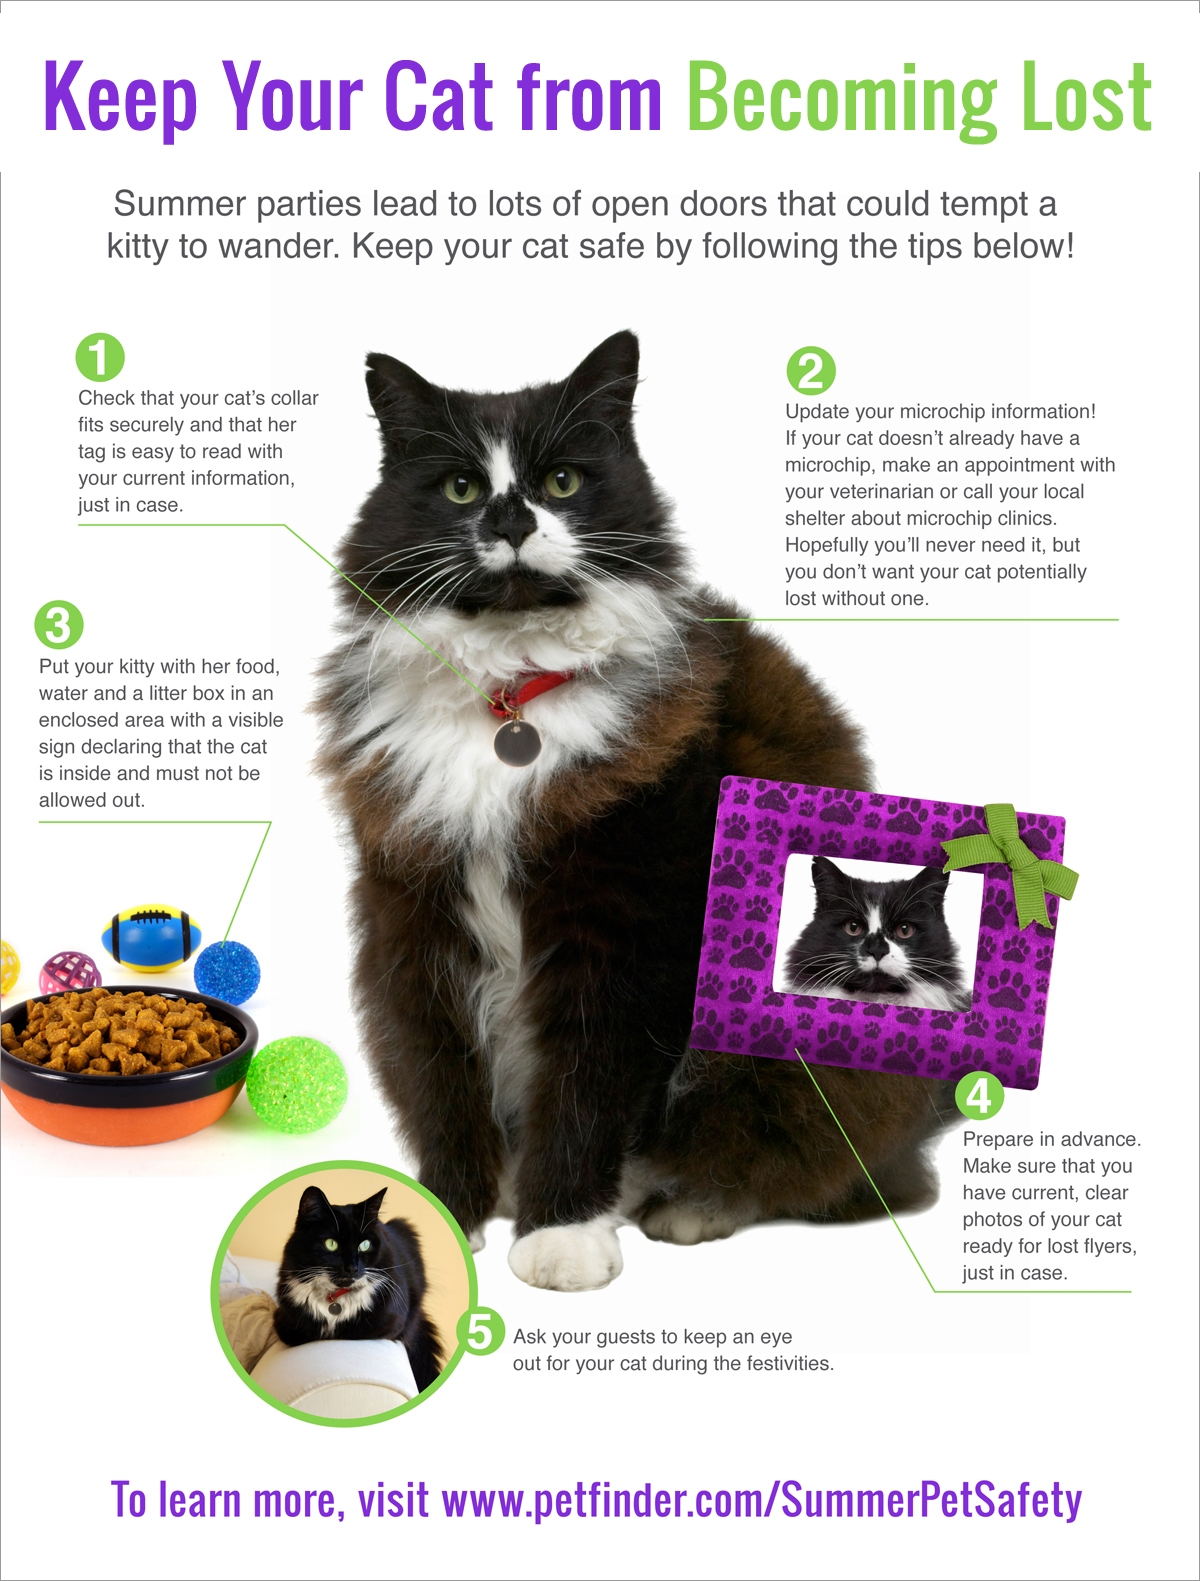 5-tips-to-keep-cat-from-becoming-lost